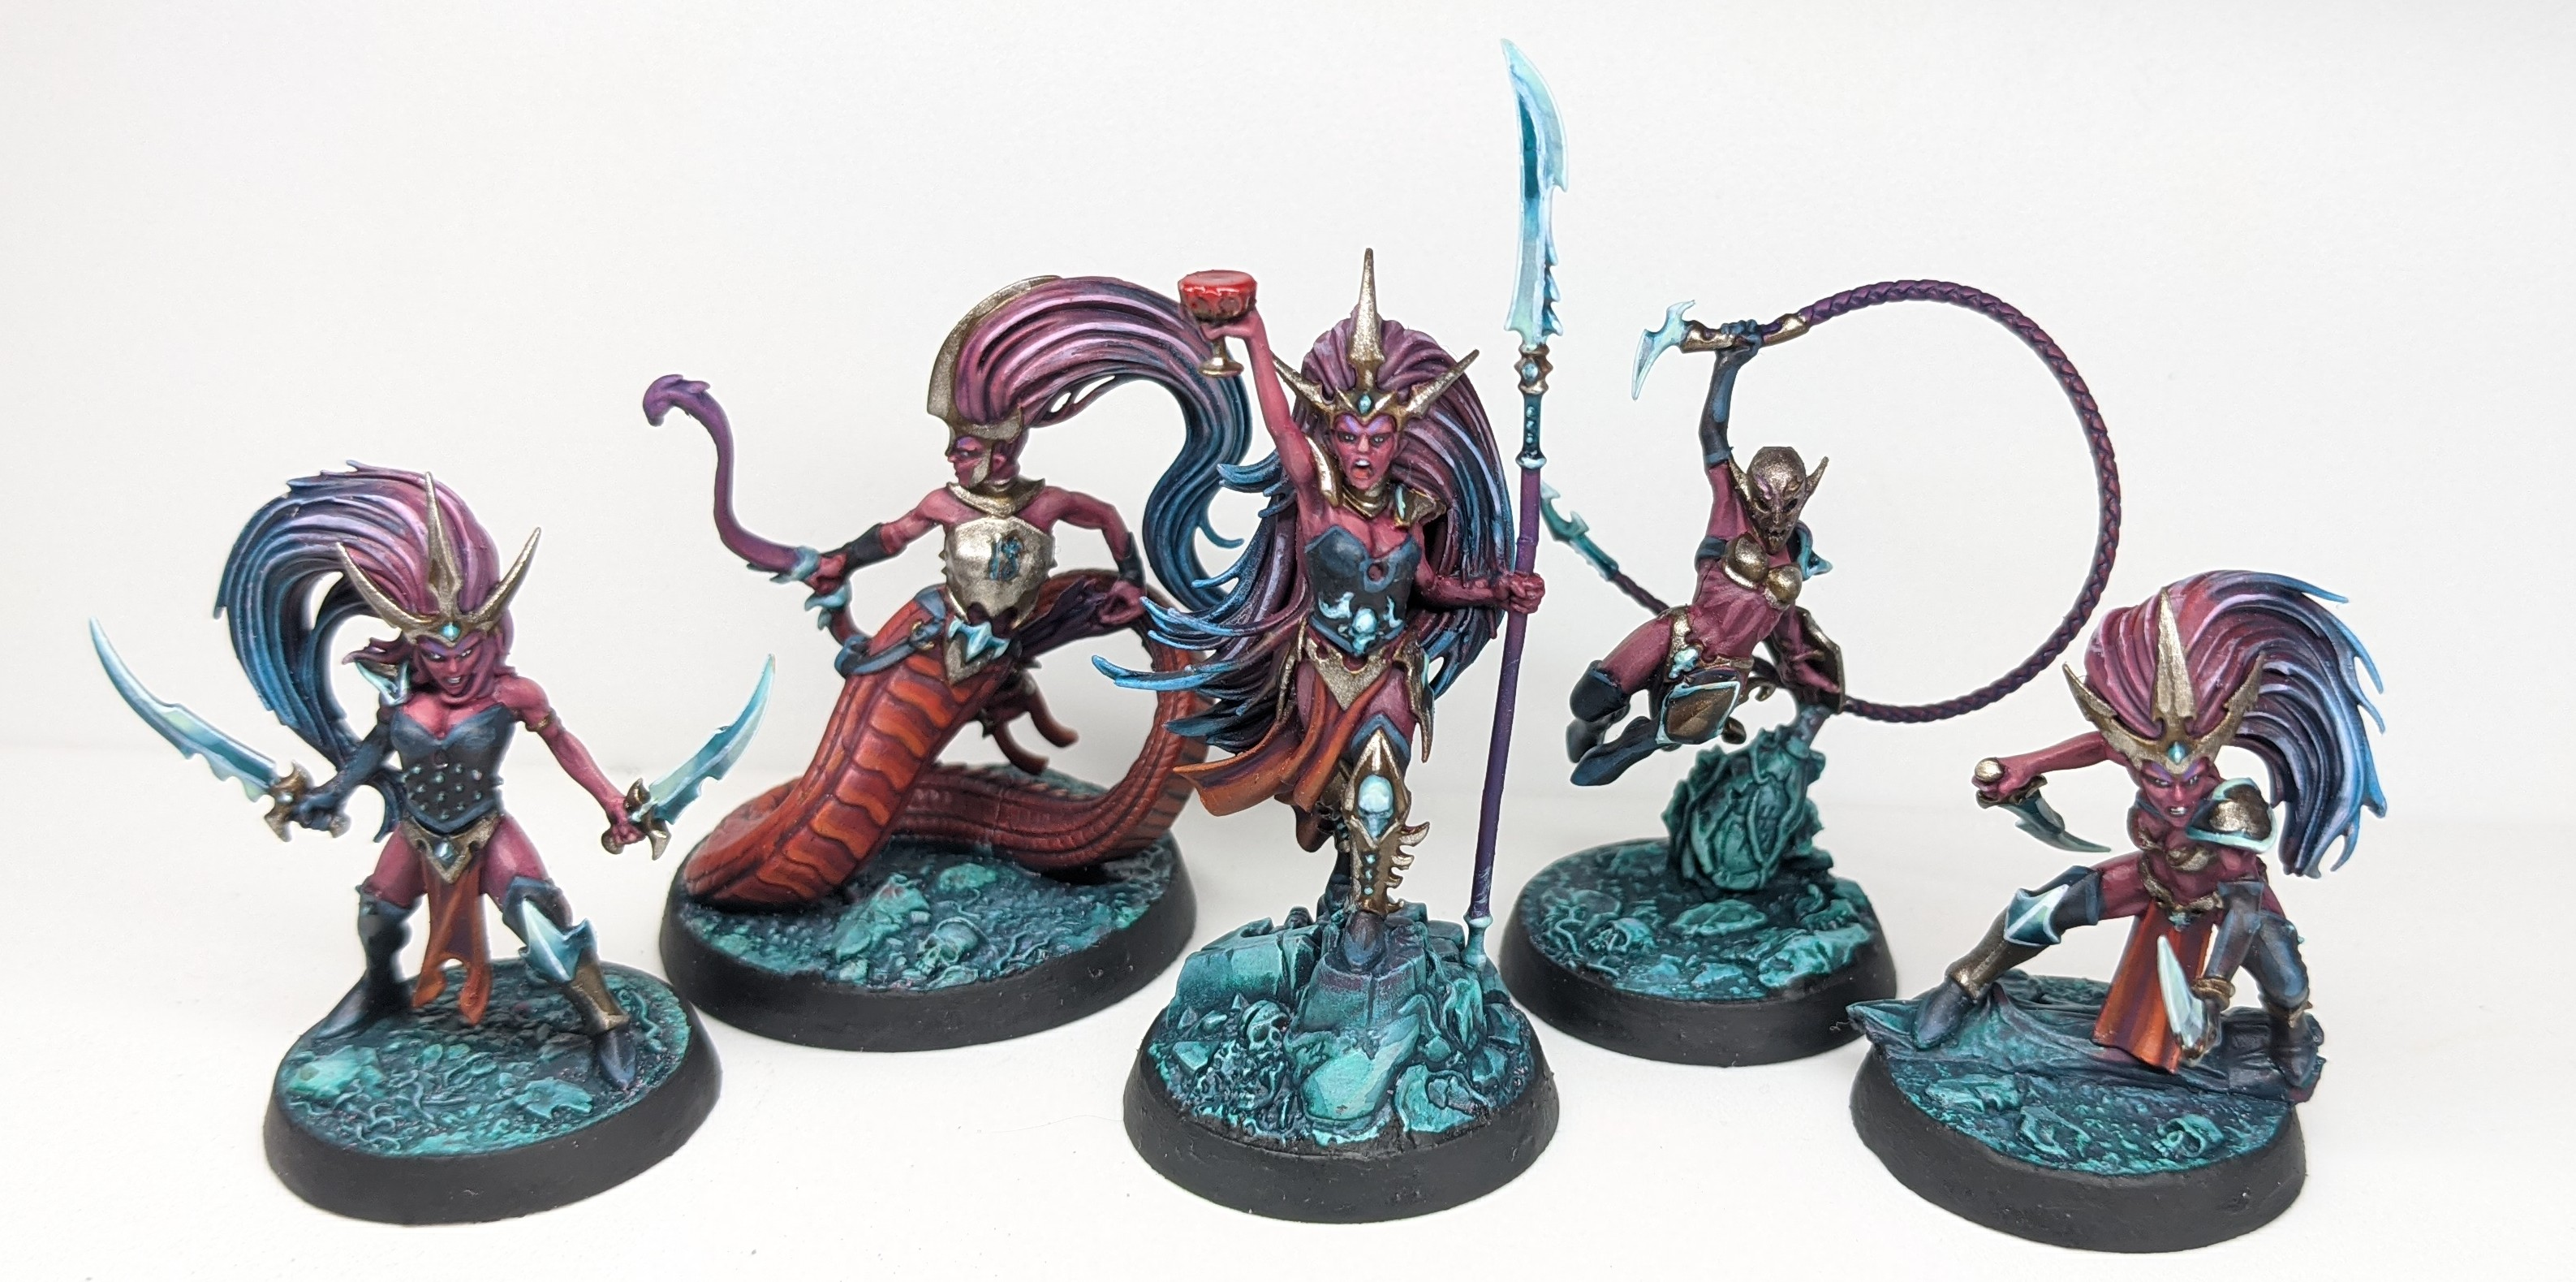 Several Model Elves with red skin and pink and blue hair.